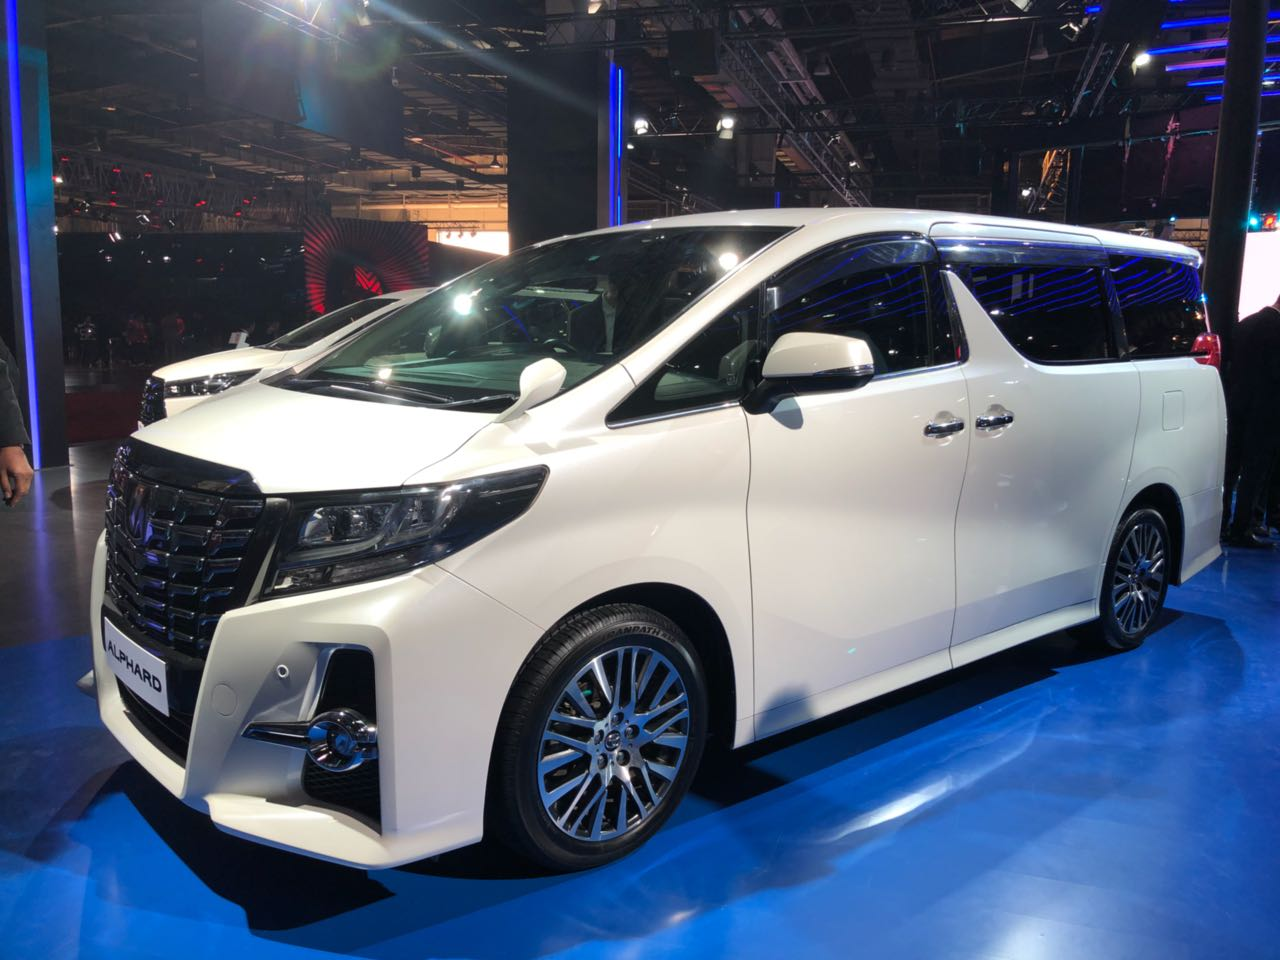 Toyota Alphard Images Auto Expo Images on smartphone wireless speakers